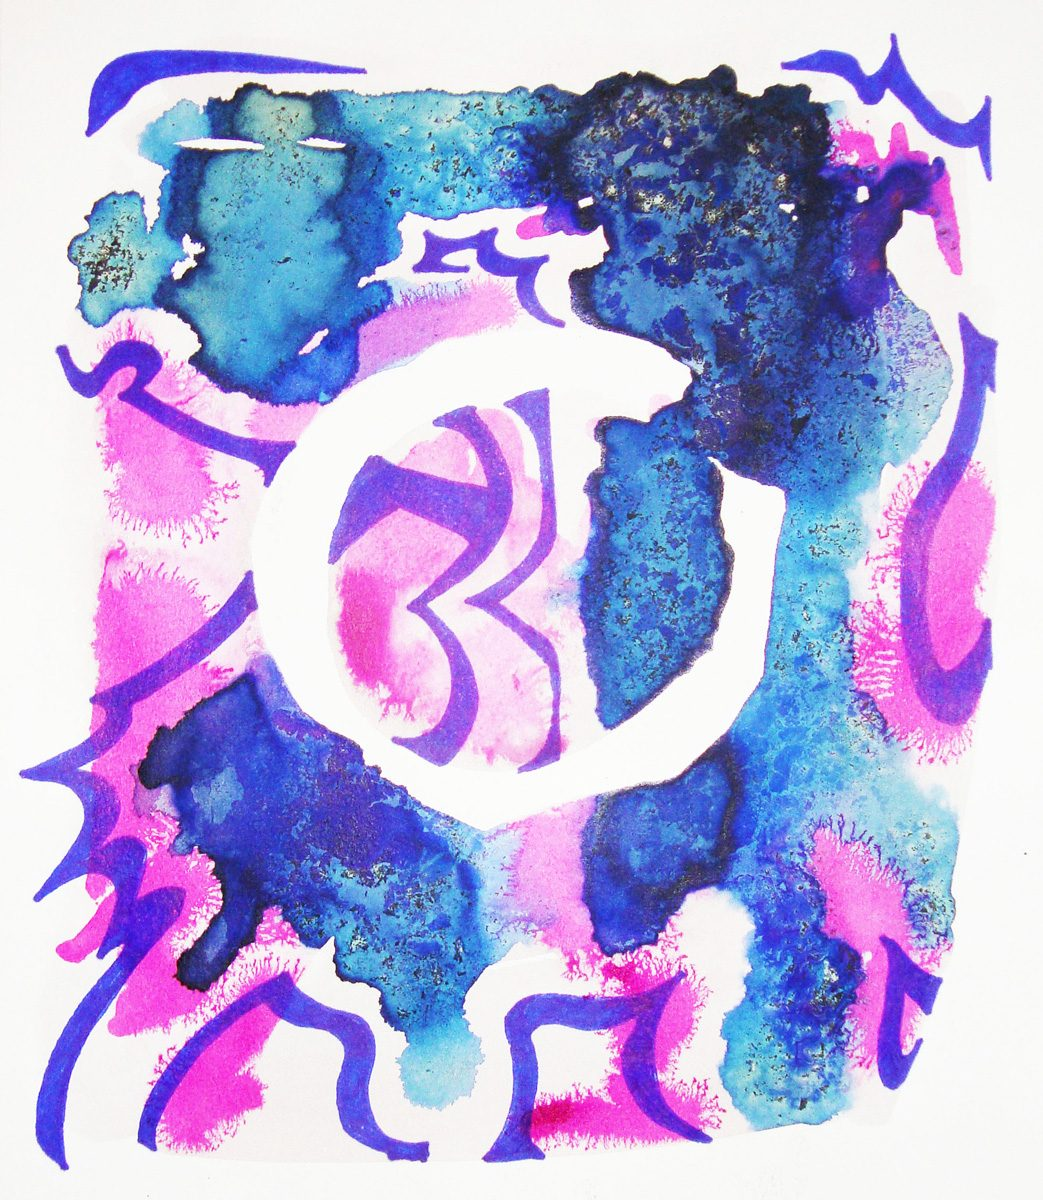 The image shows a piece of artwork by Jina Wallwork. It is an ink drawing of abstract subject matter. Stylistically this piece of artwork has links with abstract art.